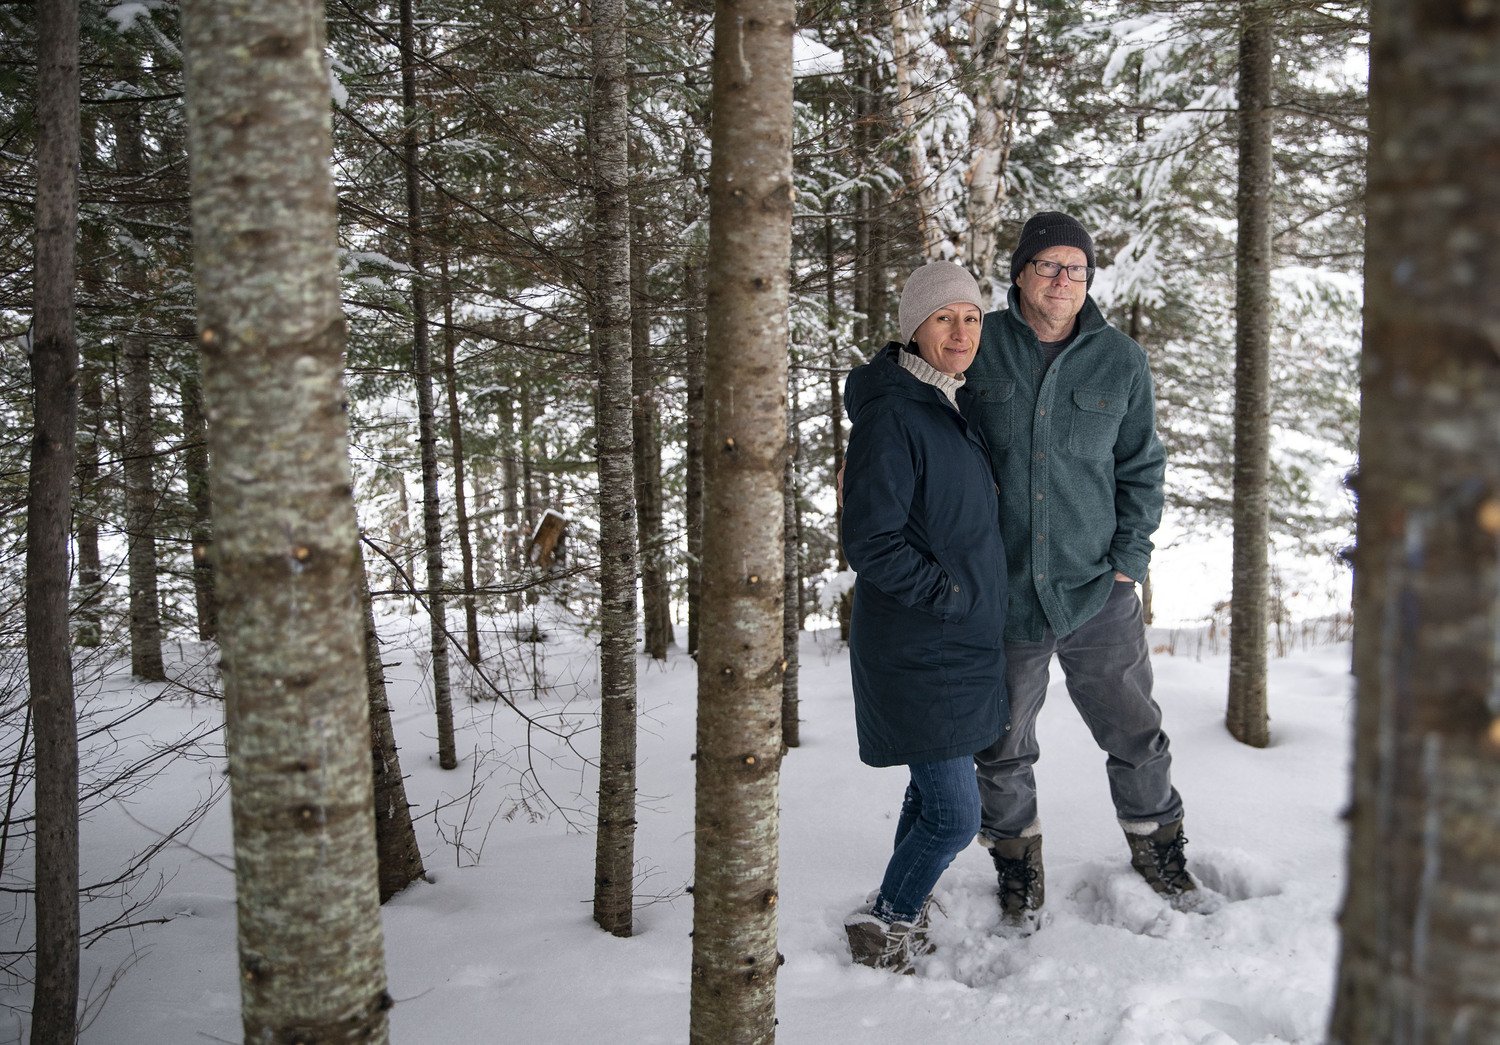 Barbara Platnick and Dave Kregness moved from Plymouth to a year-round home up the Gunflint Trail, knowing Kregness would have the high-speed internet needed to continue working.